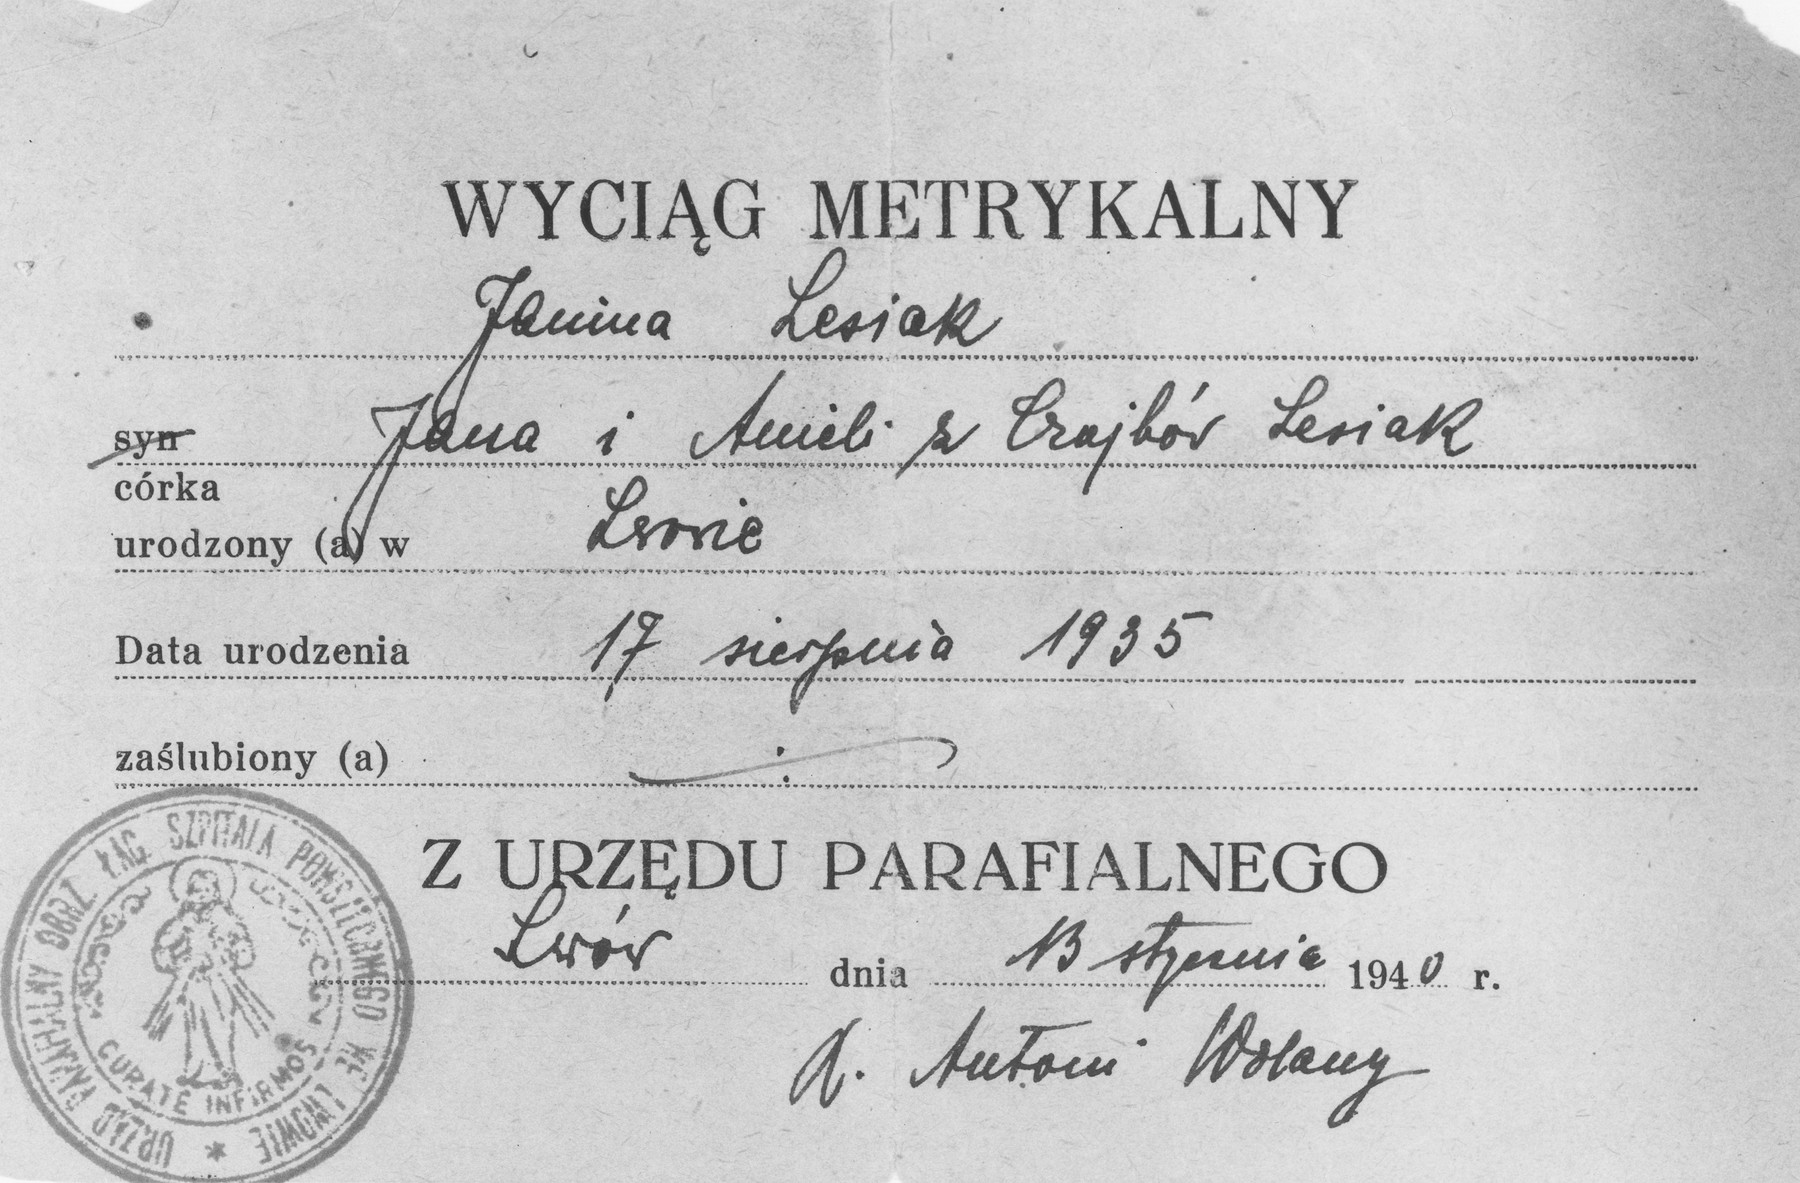 False Polish baptismal certificate issued to the Jewish child Yona Kunstler during World War II while she was in hiding under the assumed name of Yanina Lesiak.